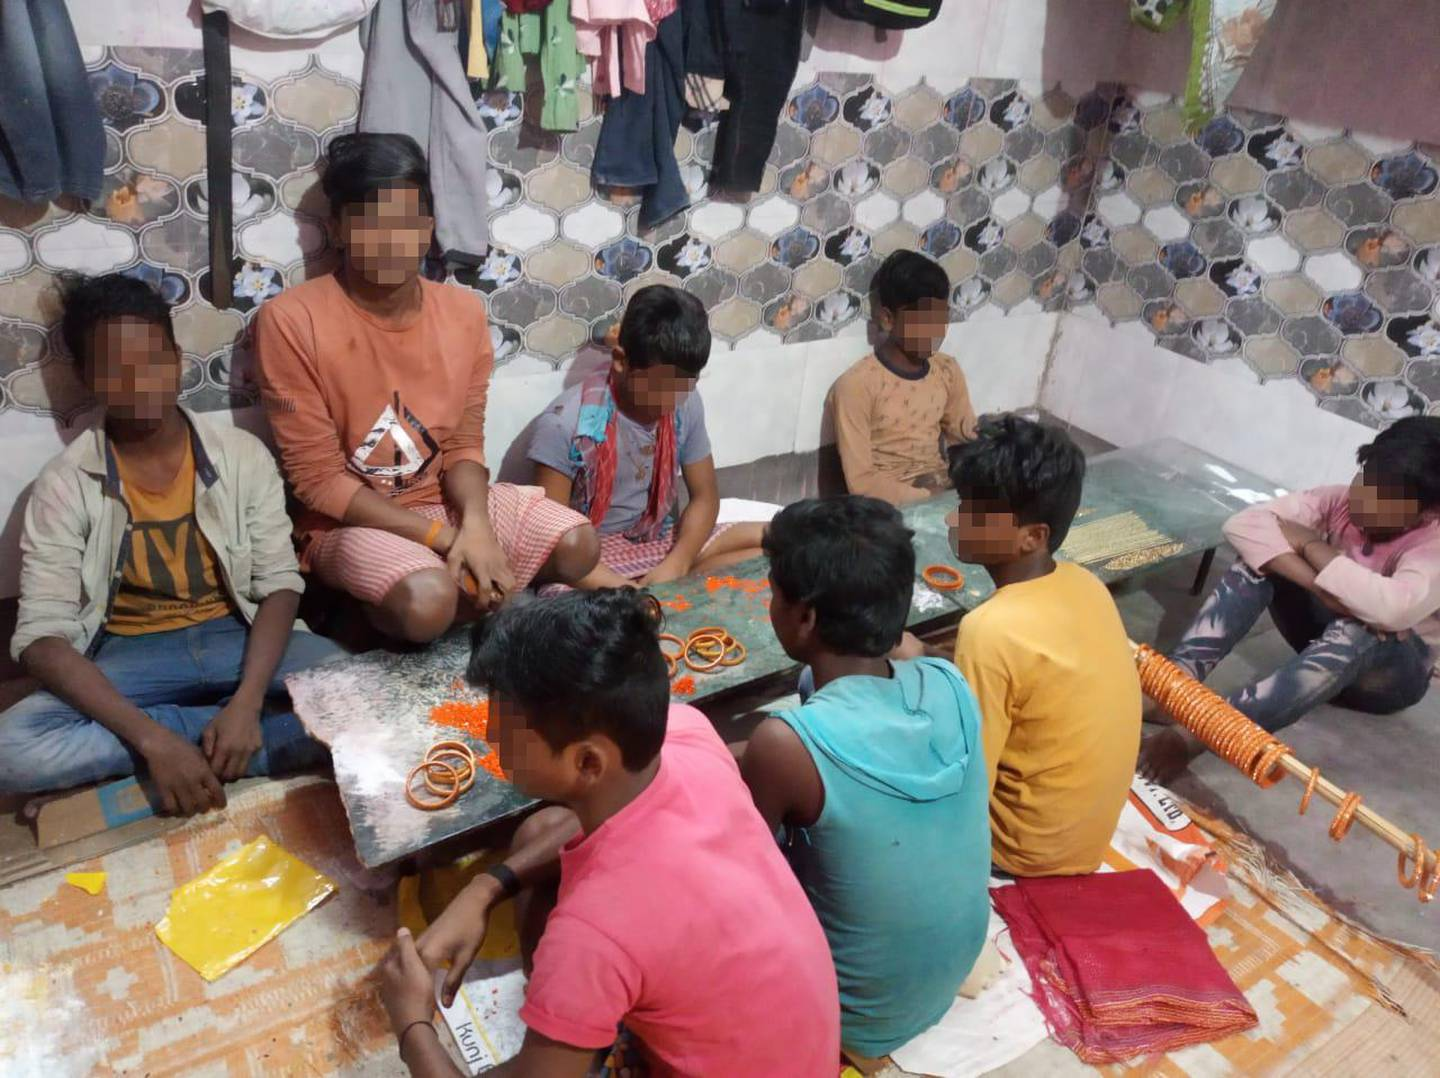 An NGO and a team of Indian police rescued 45 children, some as young as seven years old, from a bangle workshop in New Delhi. The children were kept in absymal conditions and forced to work for 12 hours a day. The children were forced to squat for 12 hours on floor and painfully glued sparkles in bangles. The children are now taken into children's shelter at the NGO and will be rehabilitated.. Photo by Prayaas Childline